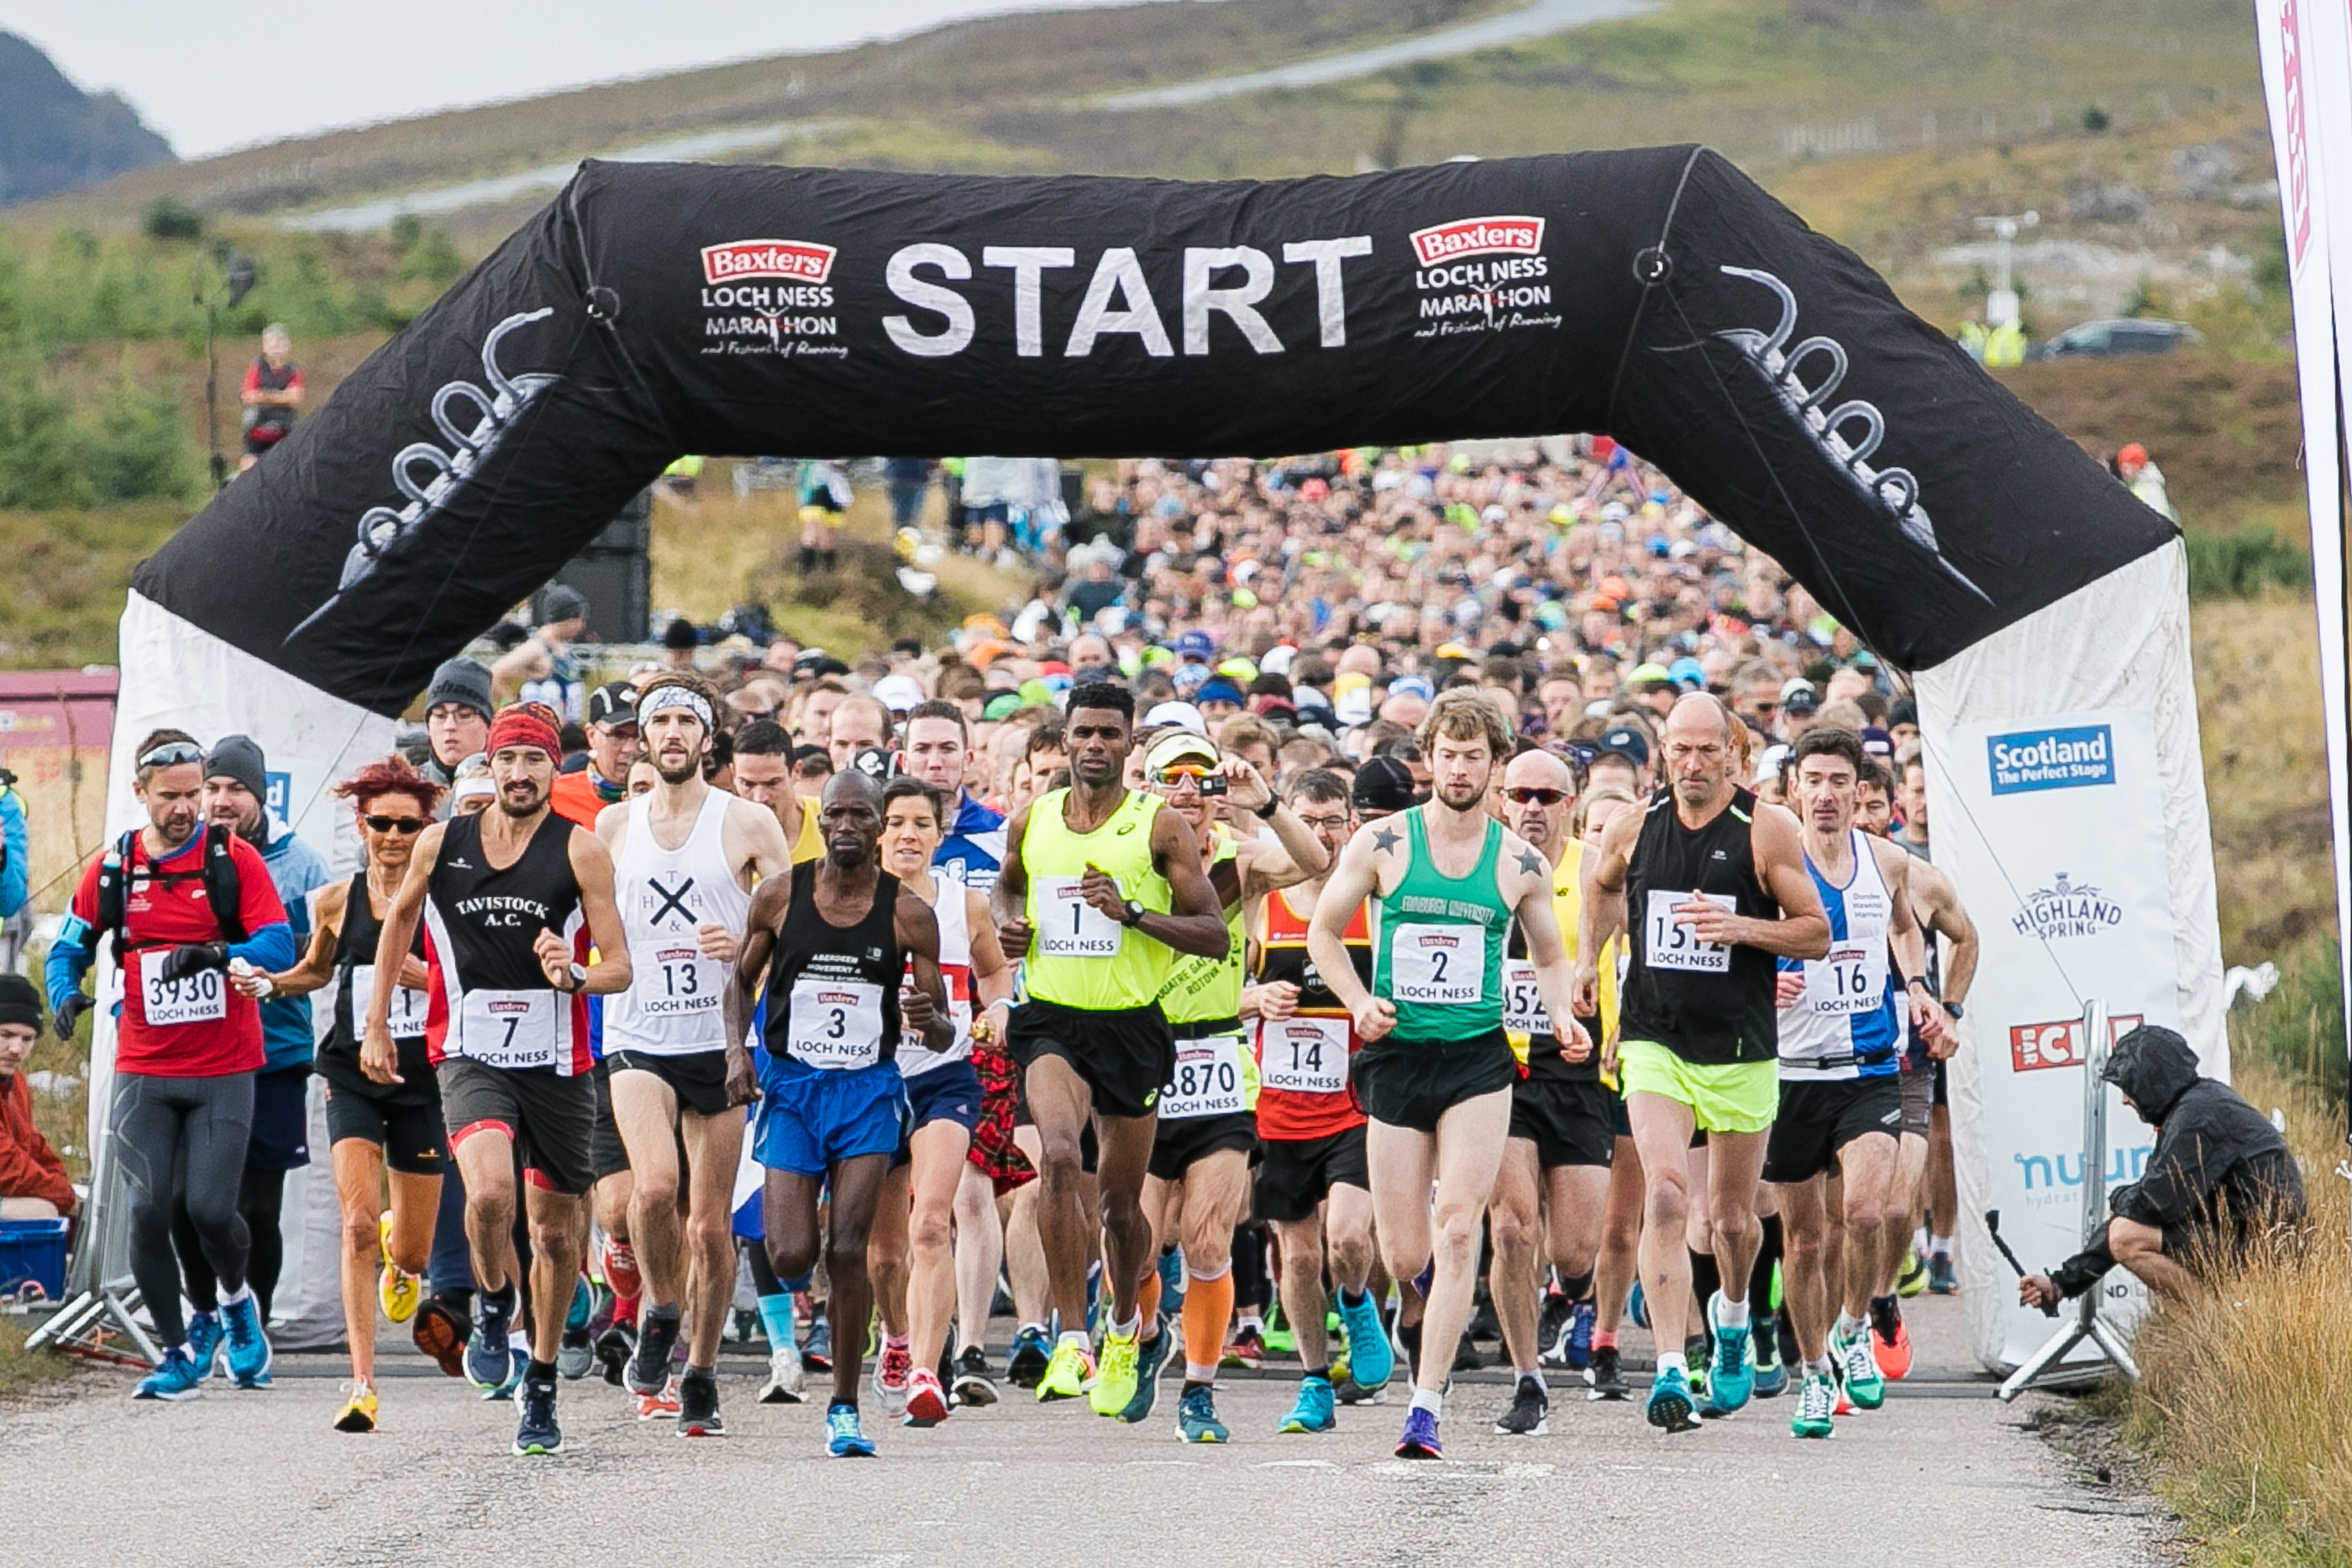 Baxters Loch Ness Marathon cancelled due to the ongoing Coronavirus pandemic